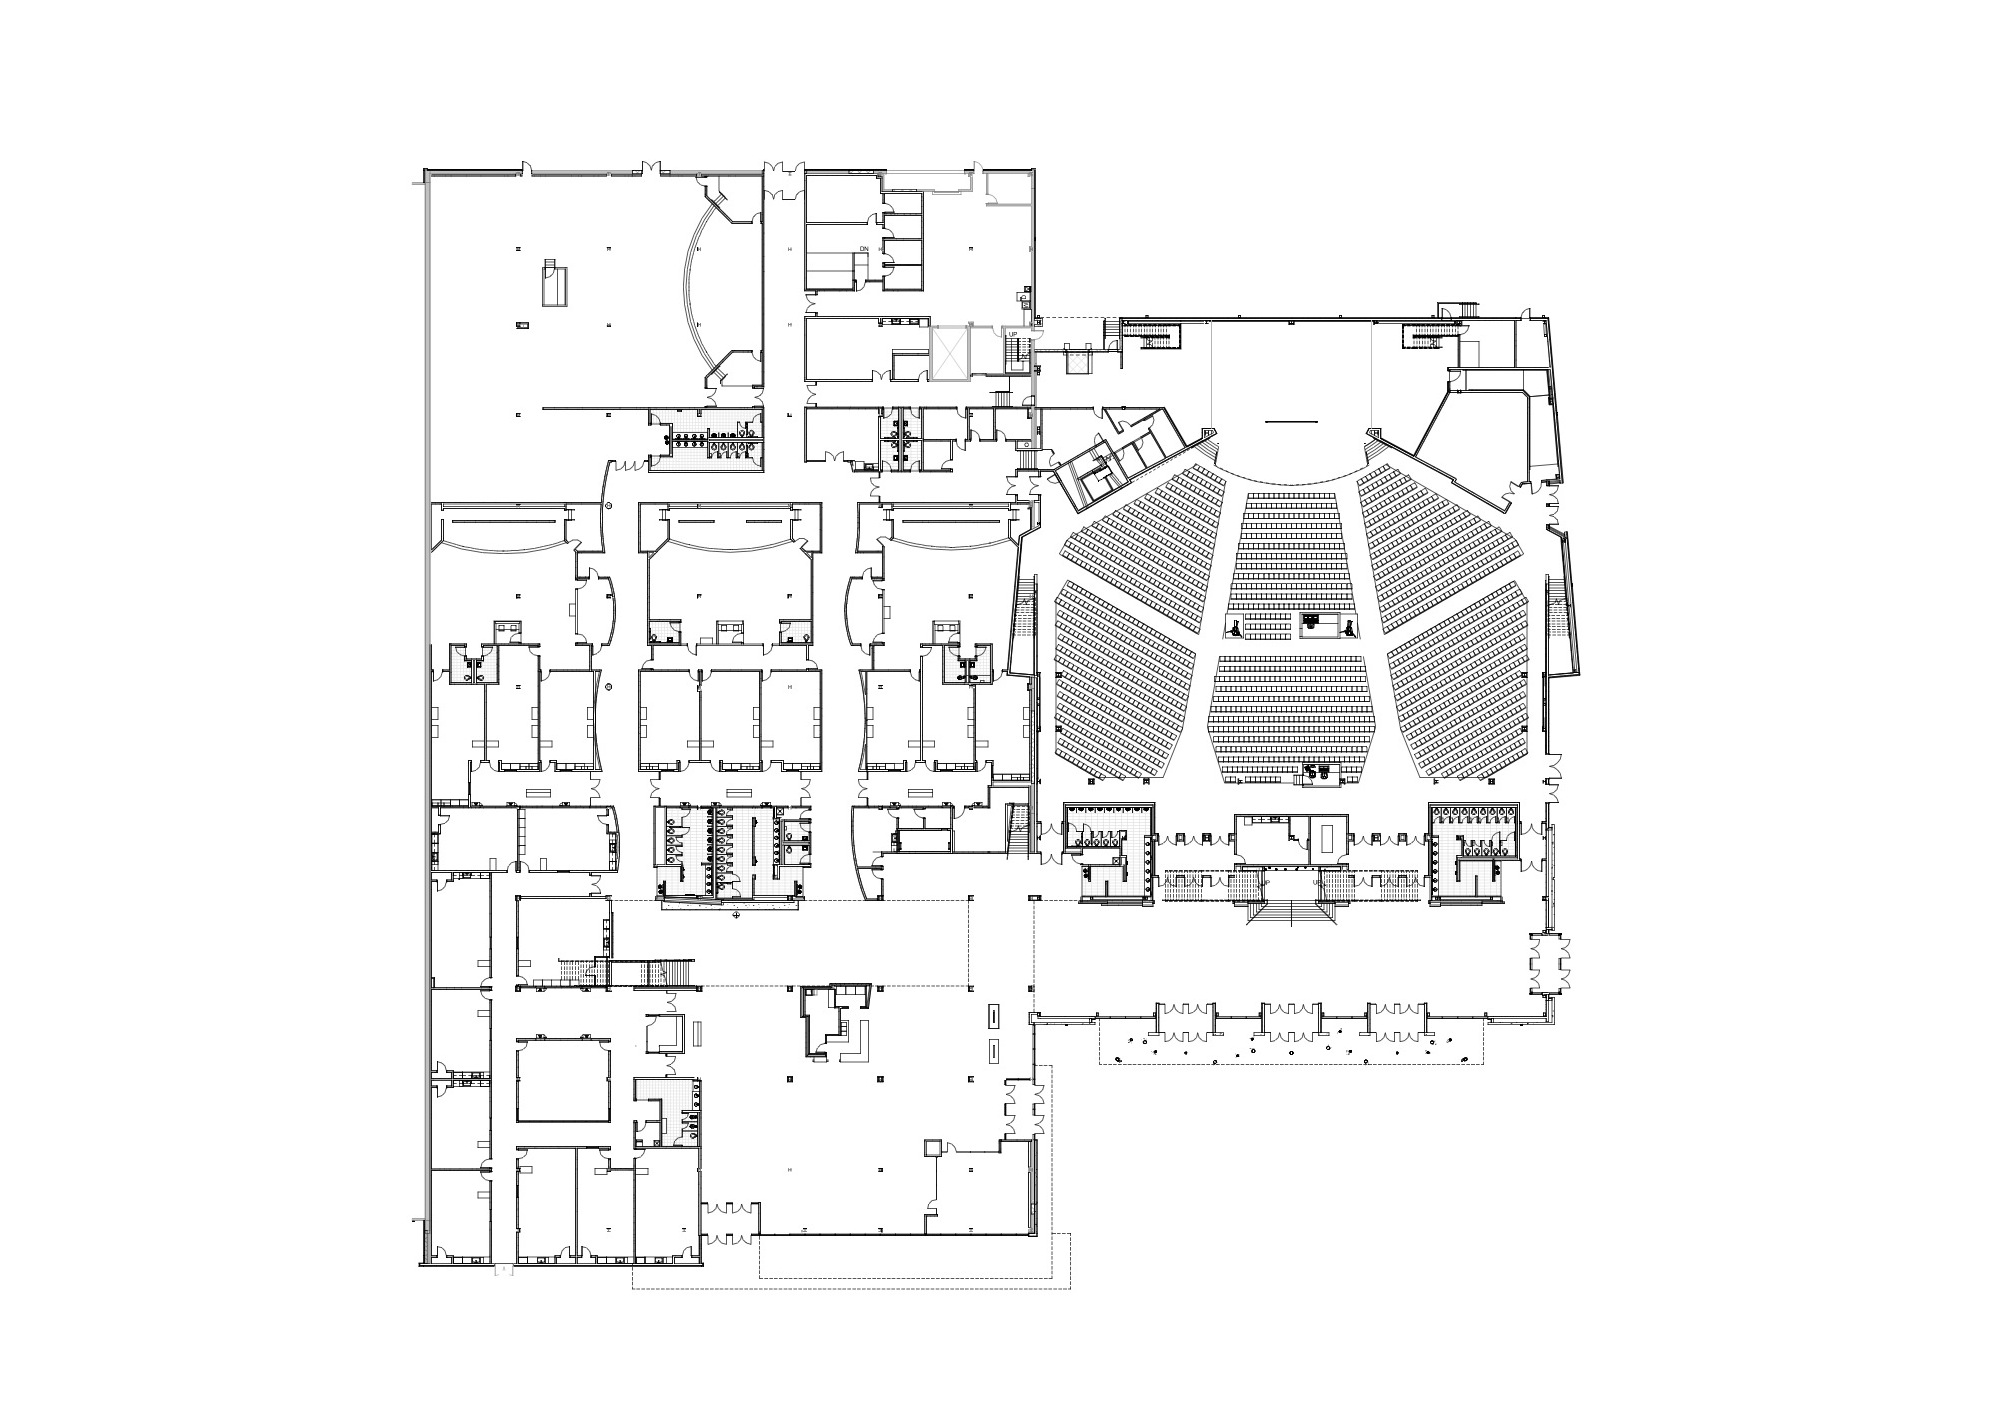 Architecture photography southland christian church eop Church floor plans online